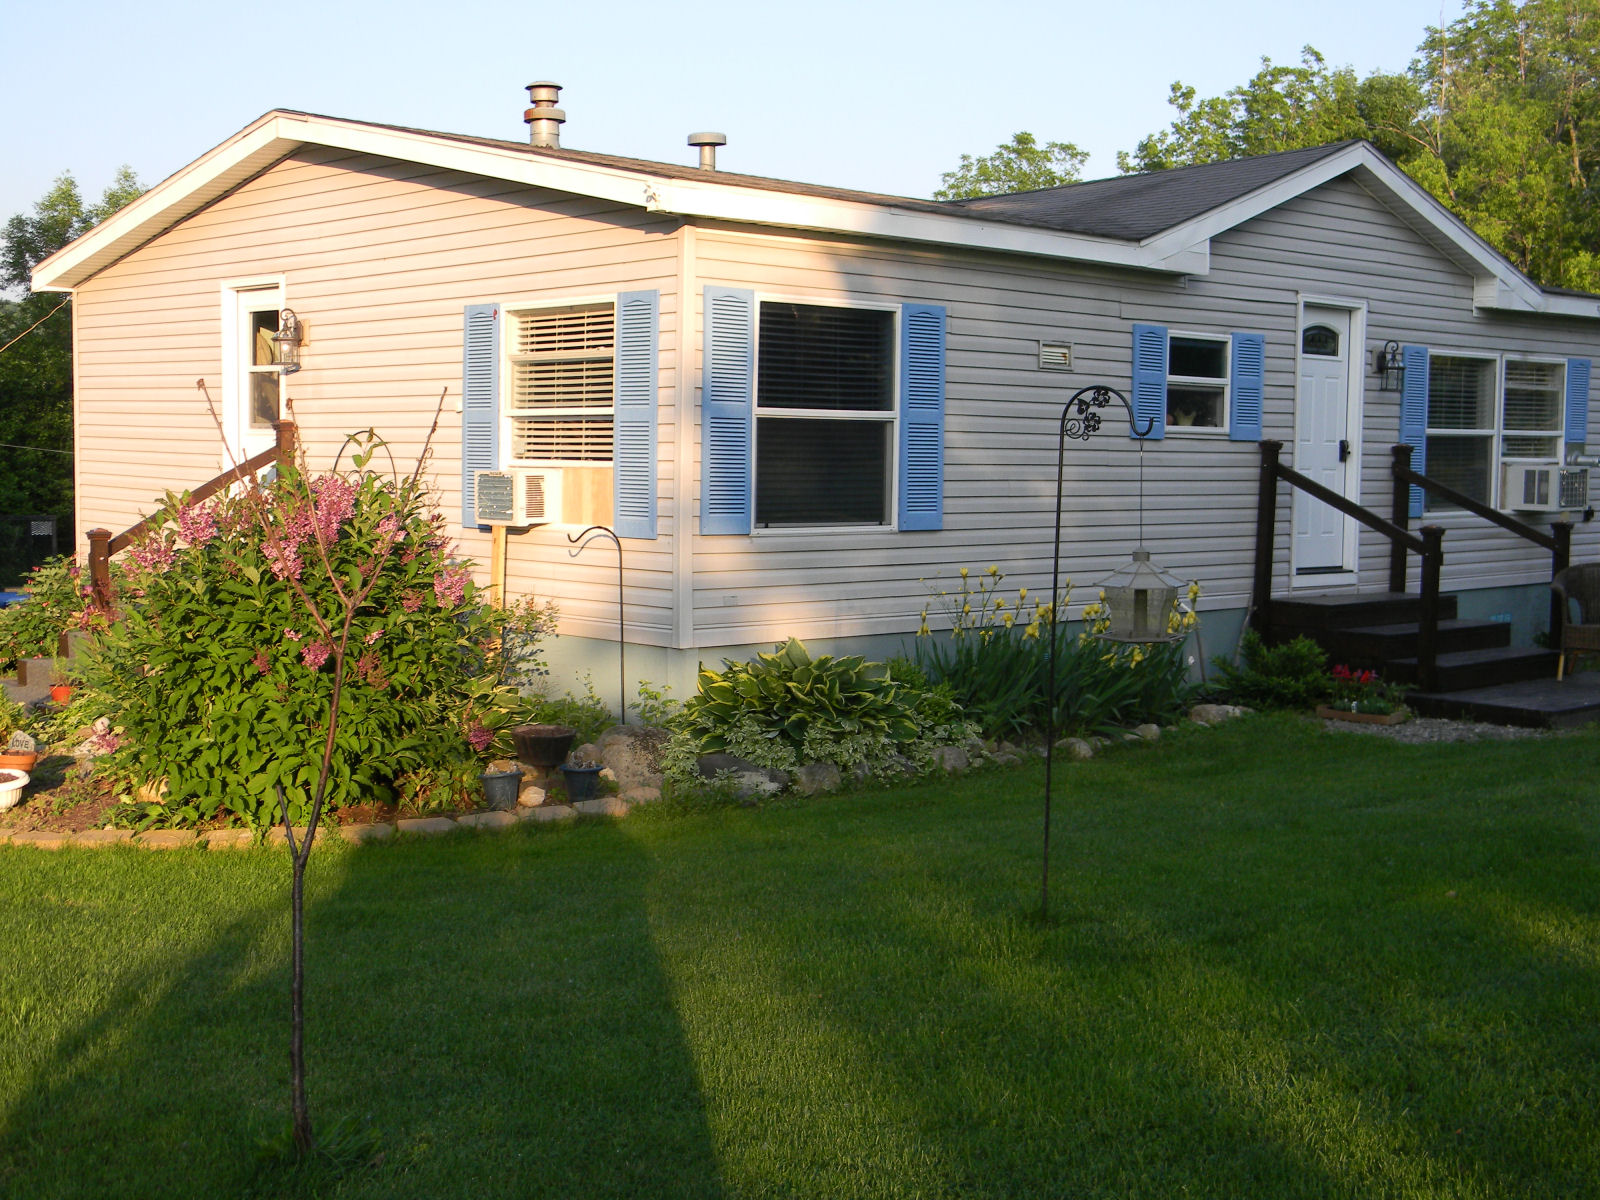 Landscaping ideas for mobile homes mobile manufactured home living - Manufactured homes designs ...